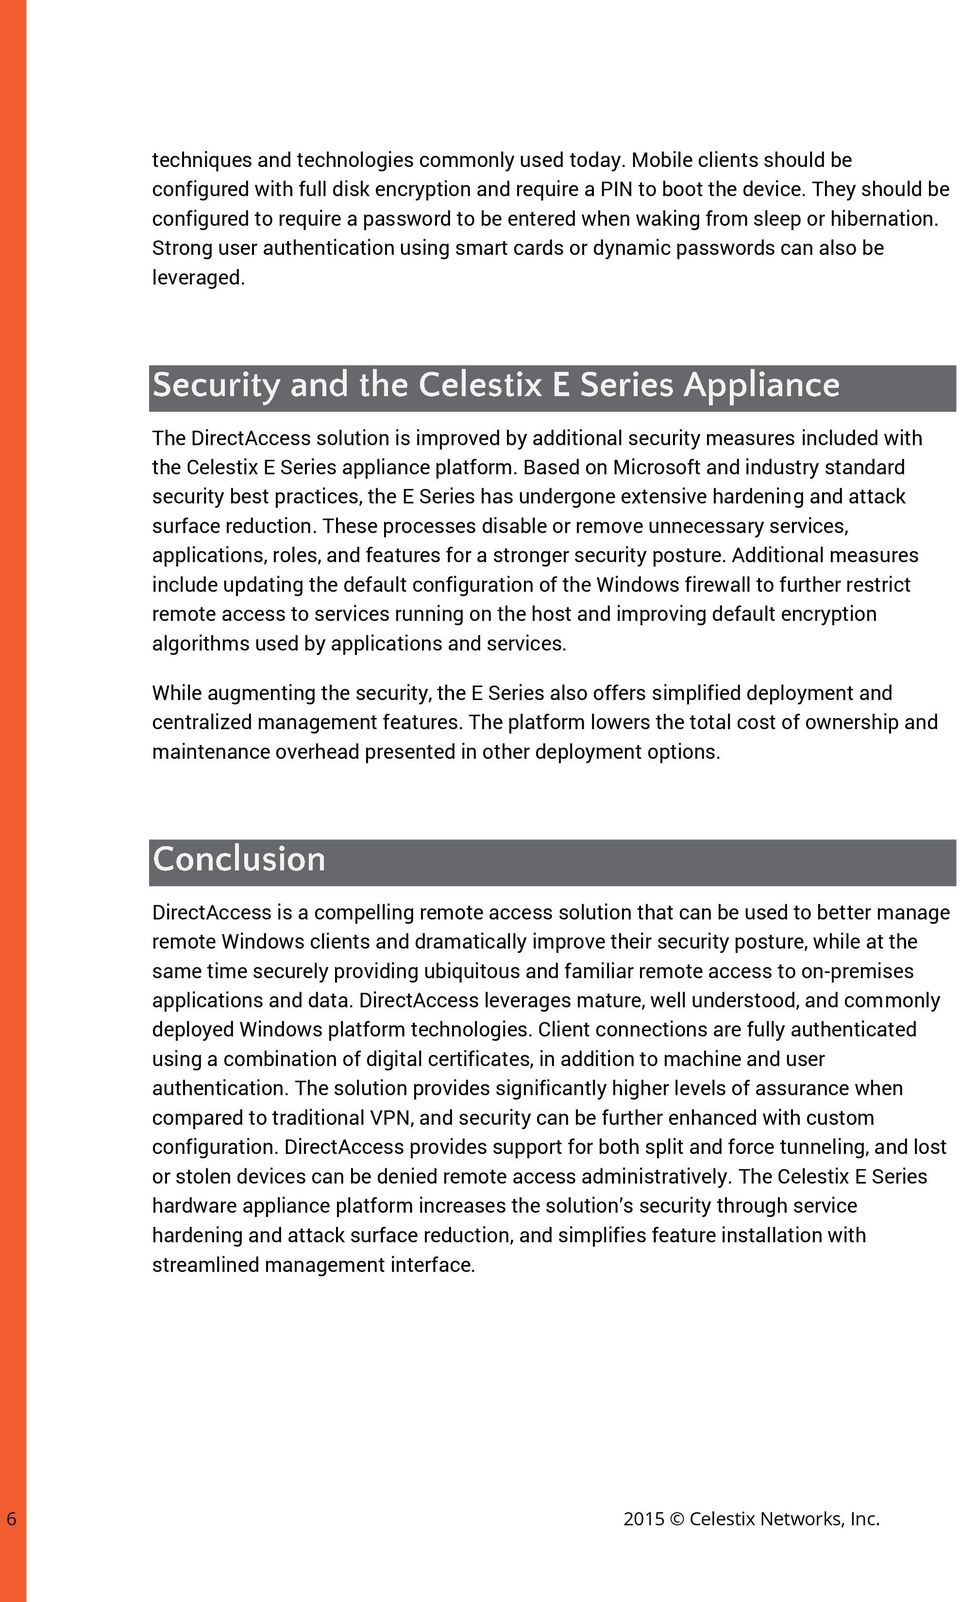 The DirectAccess solution is improved by additional security measures included with the Celestix E Series appliance platform.